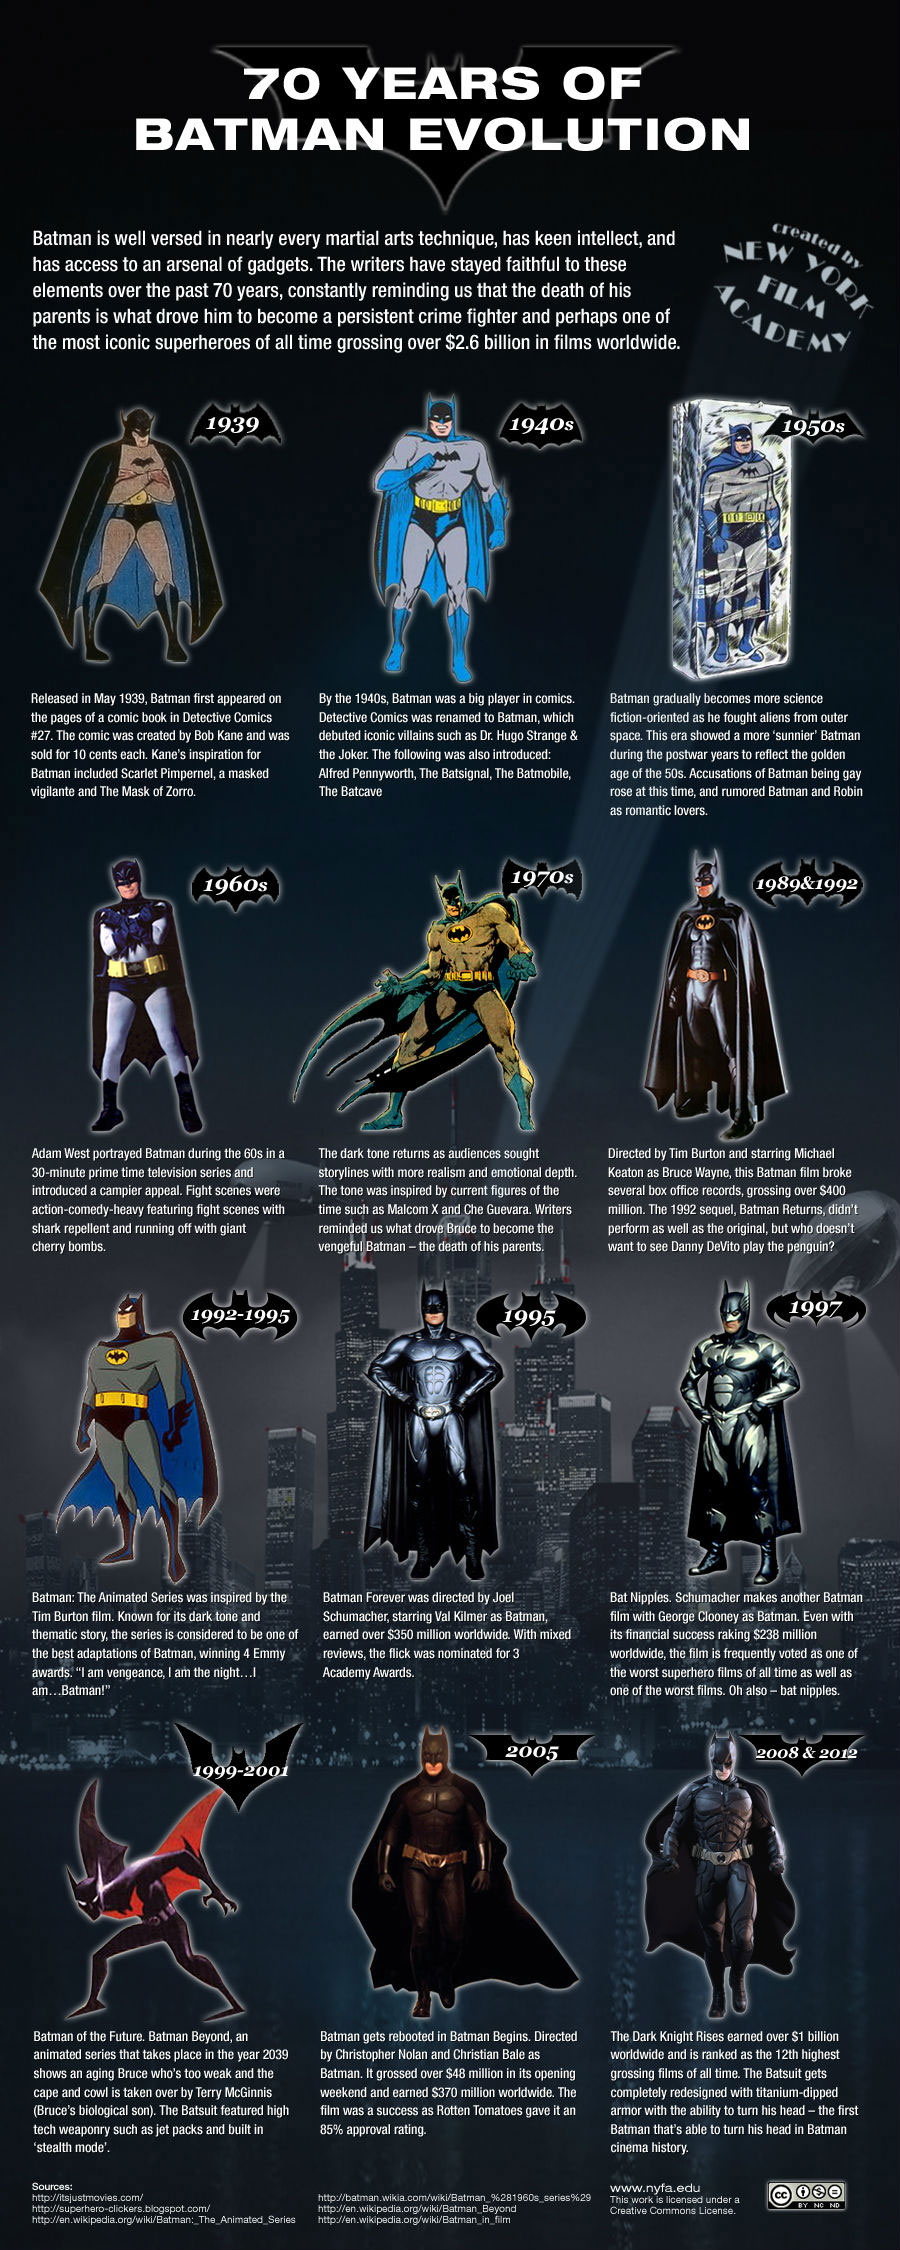 Superheroes and Batman